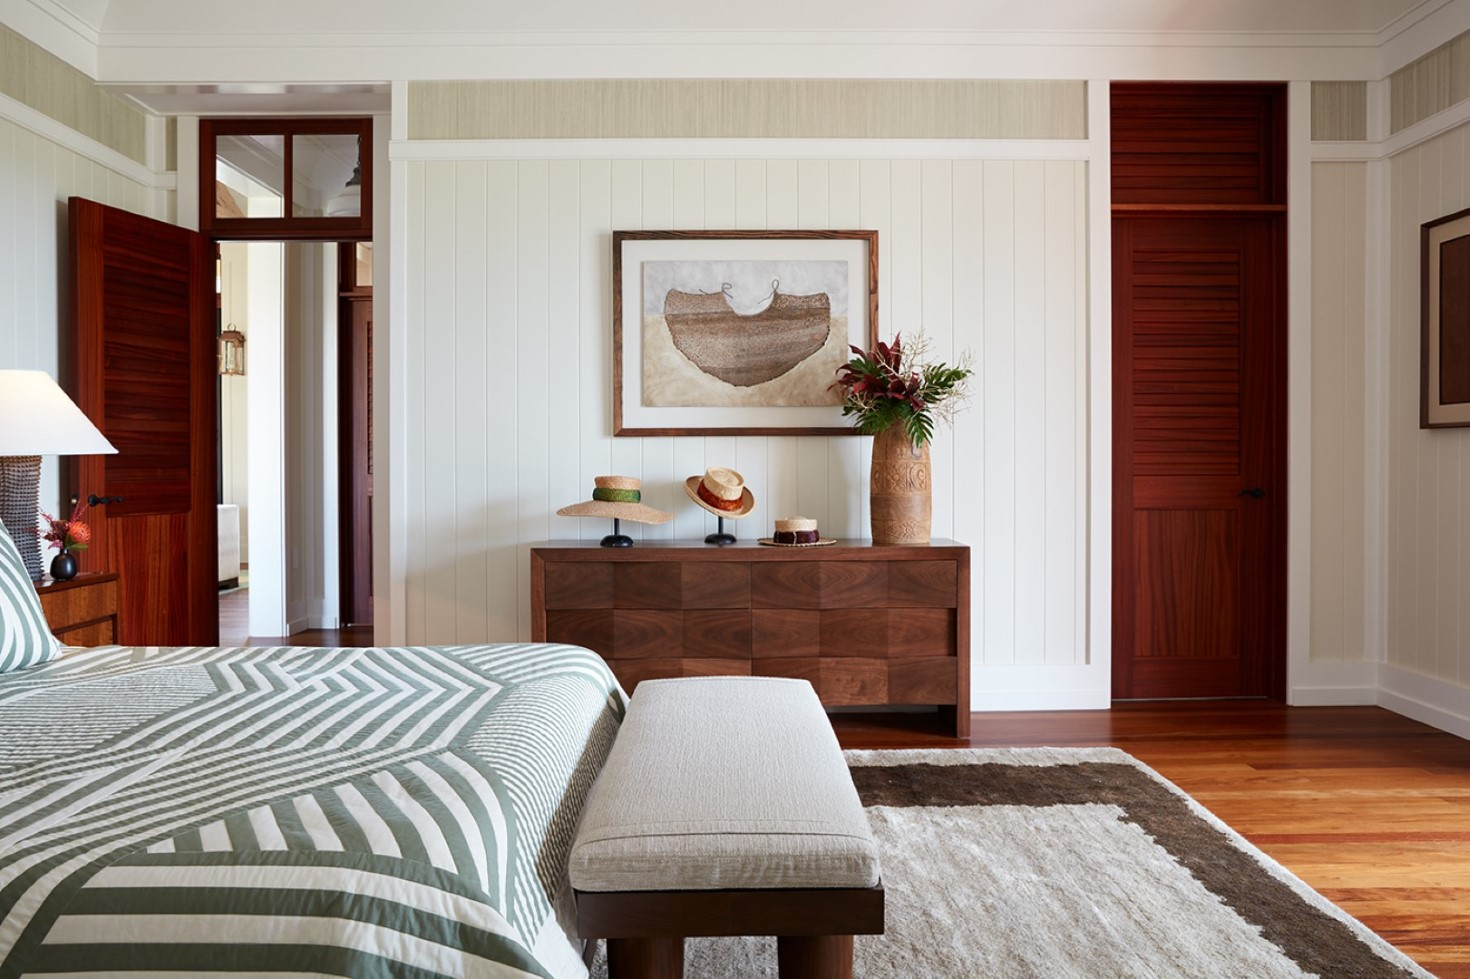 Garden Isle Residence Master Bedroom - Philpotts Interiors